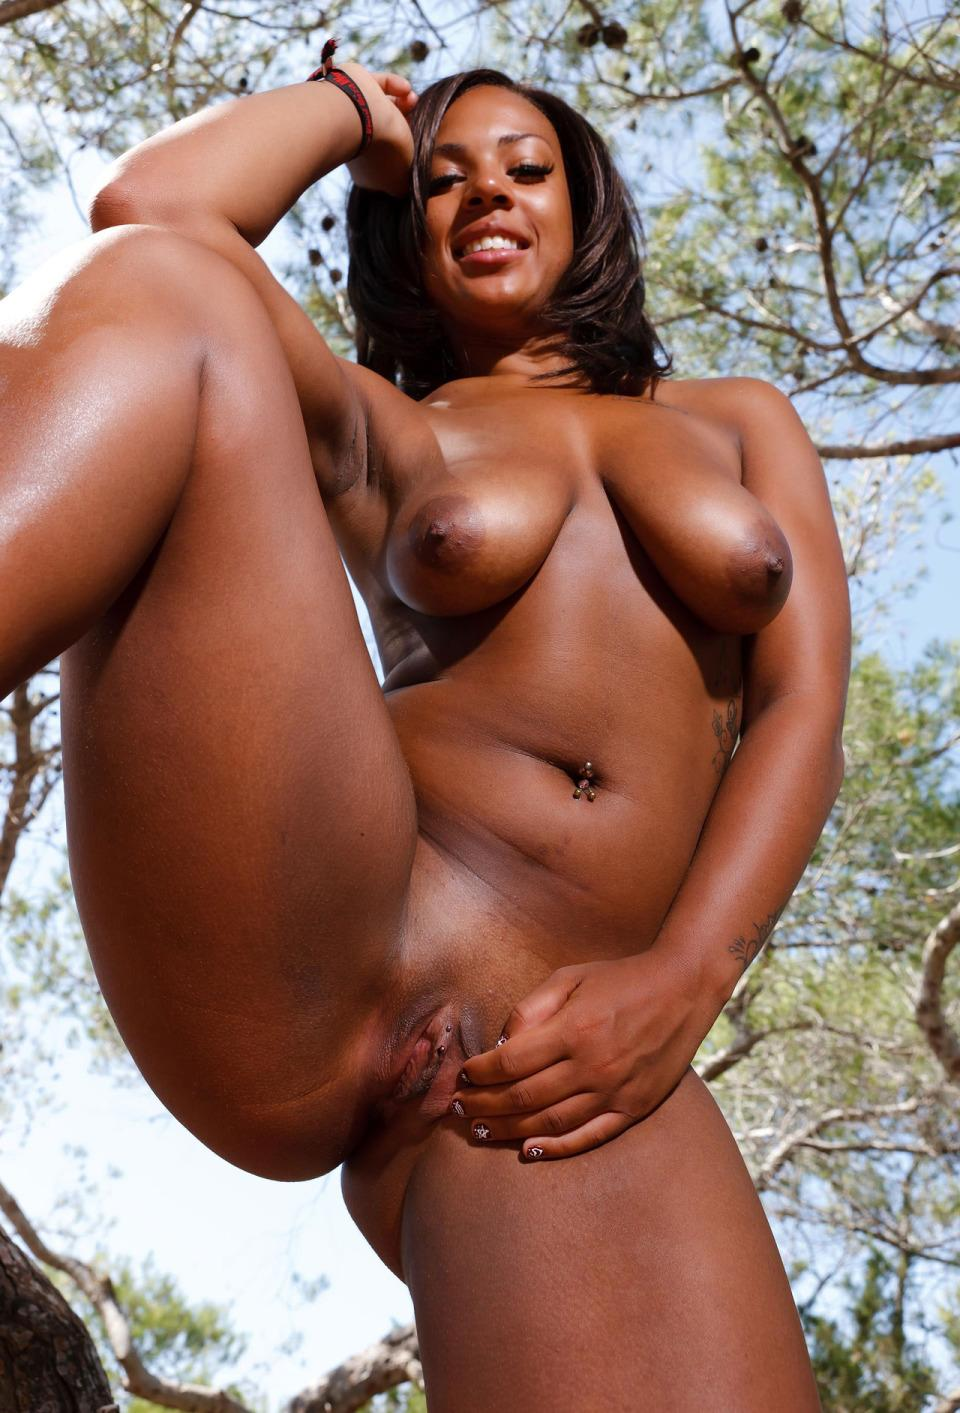 African porno naked woman biggest vagina